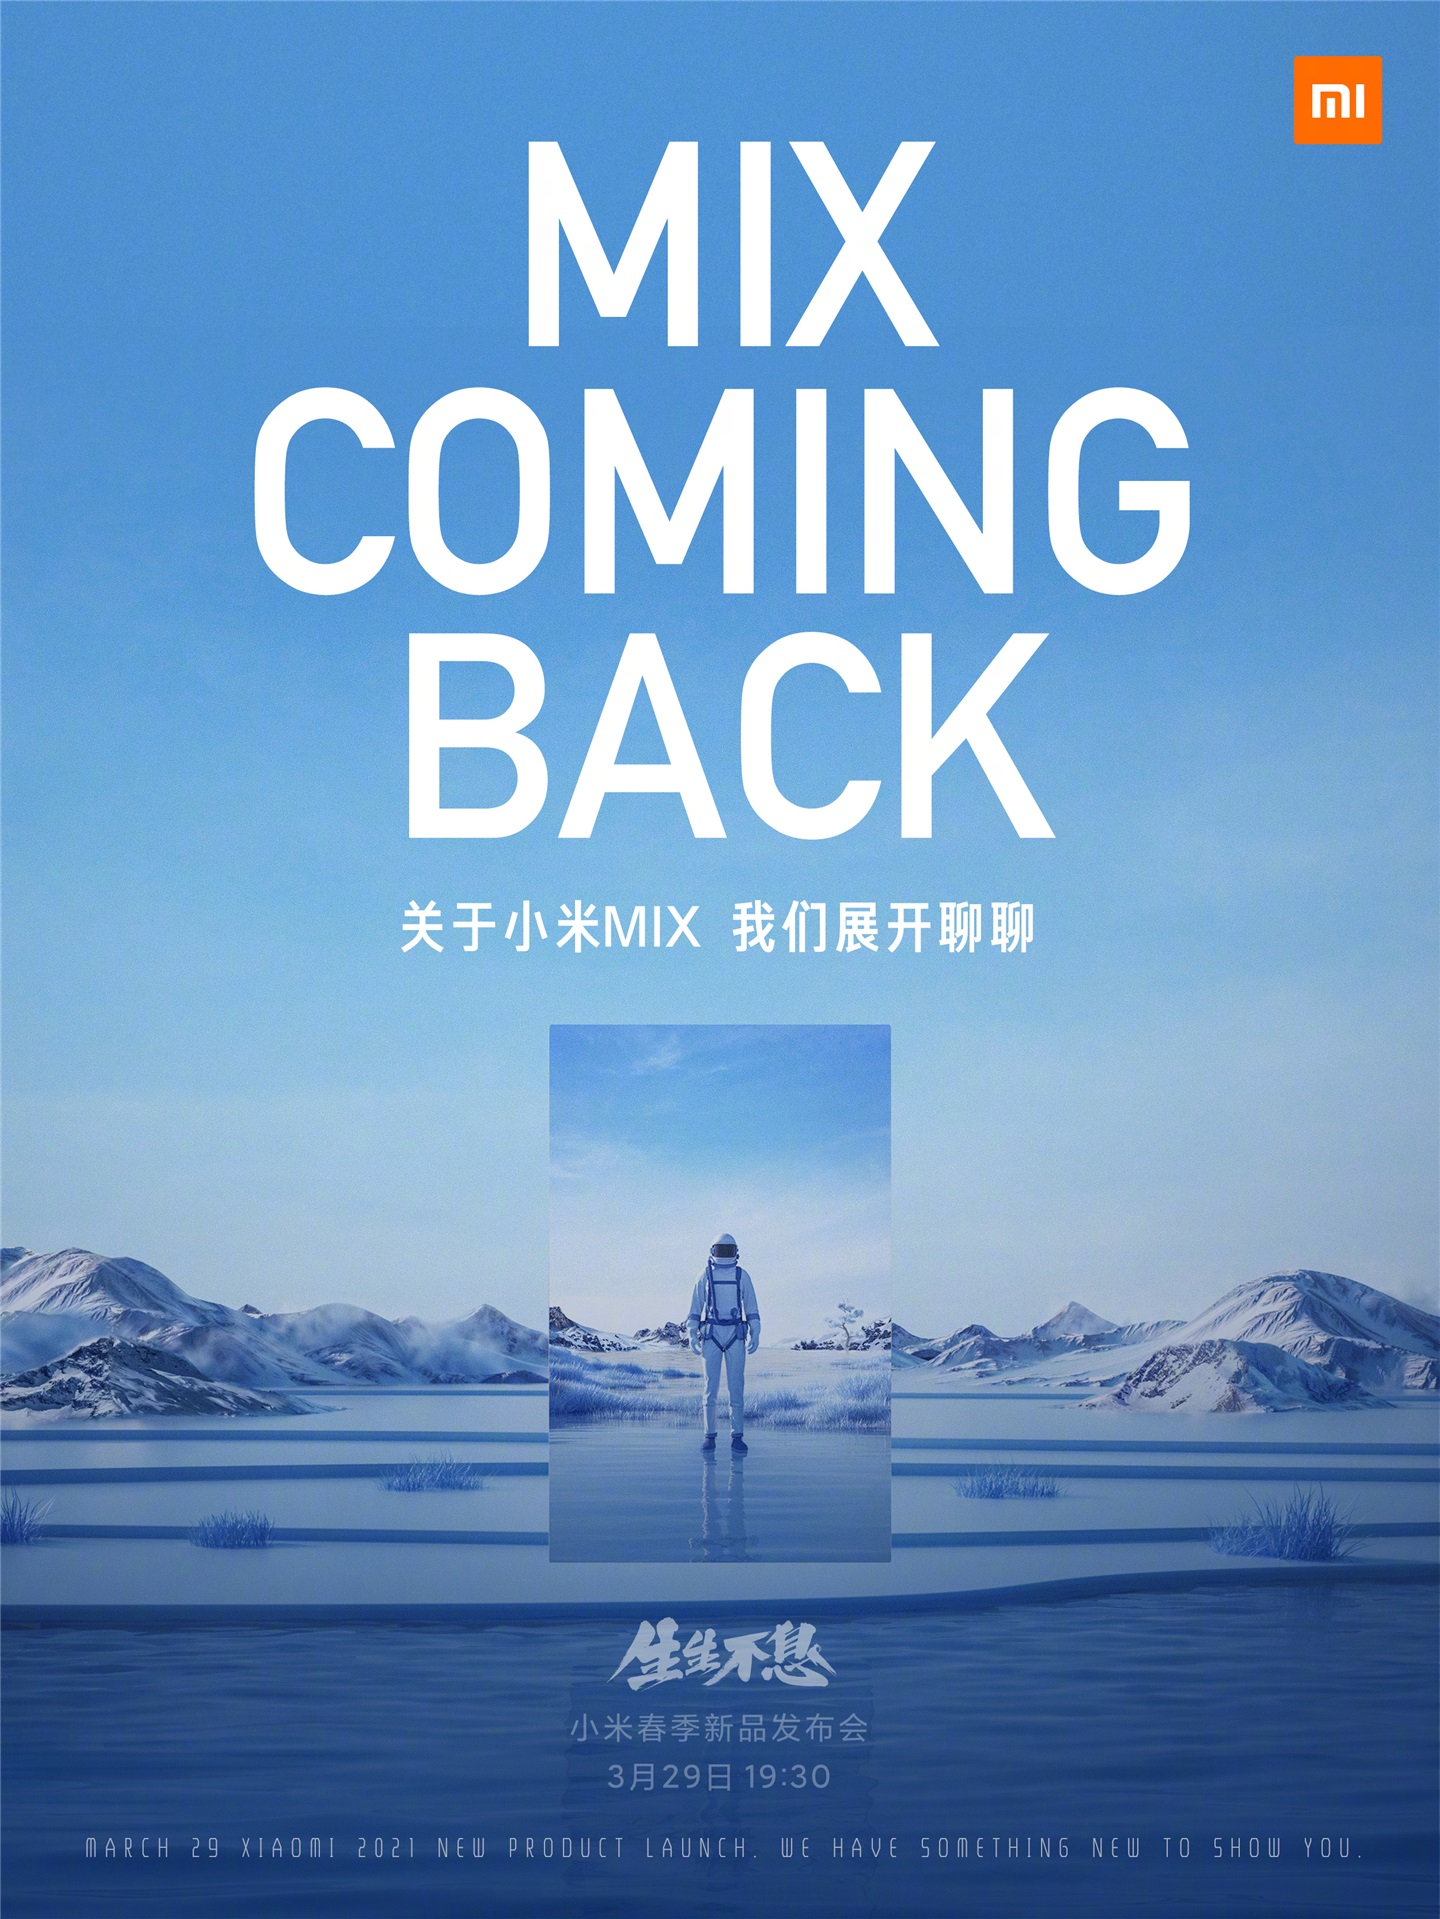 After two-year absence of new products, Xiaomi announces return of MIX series-CnTechPost